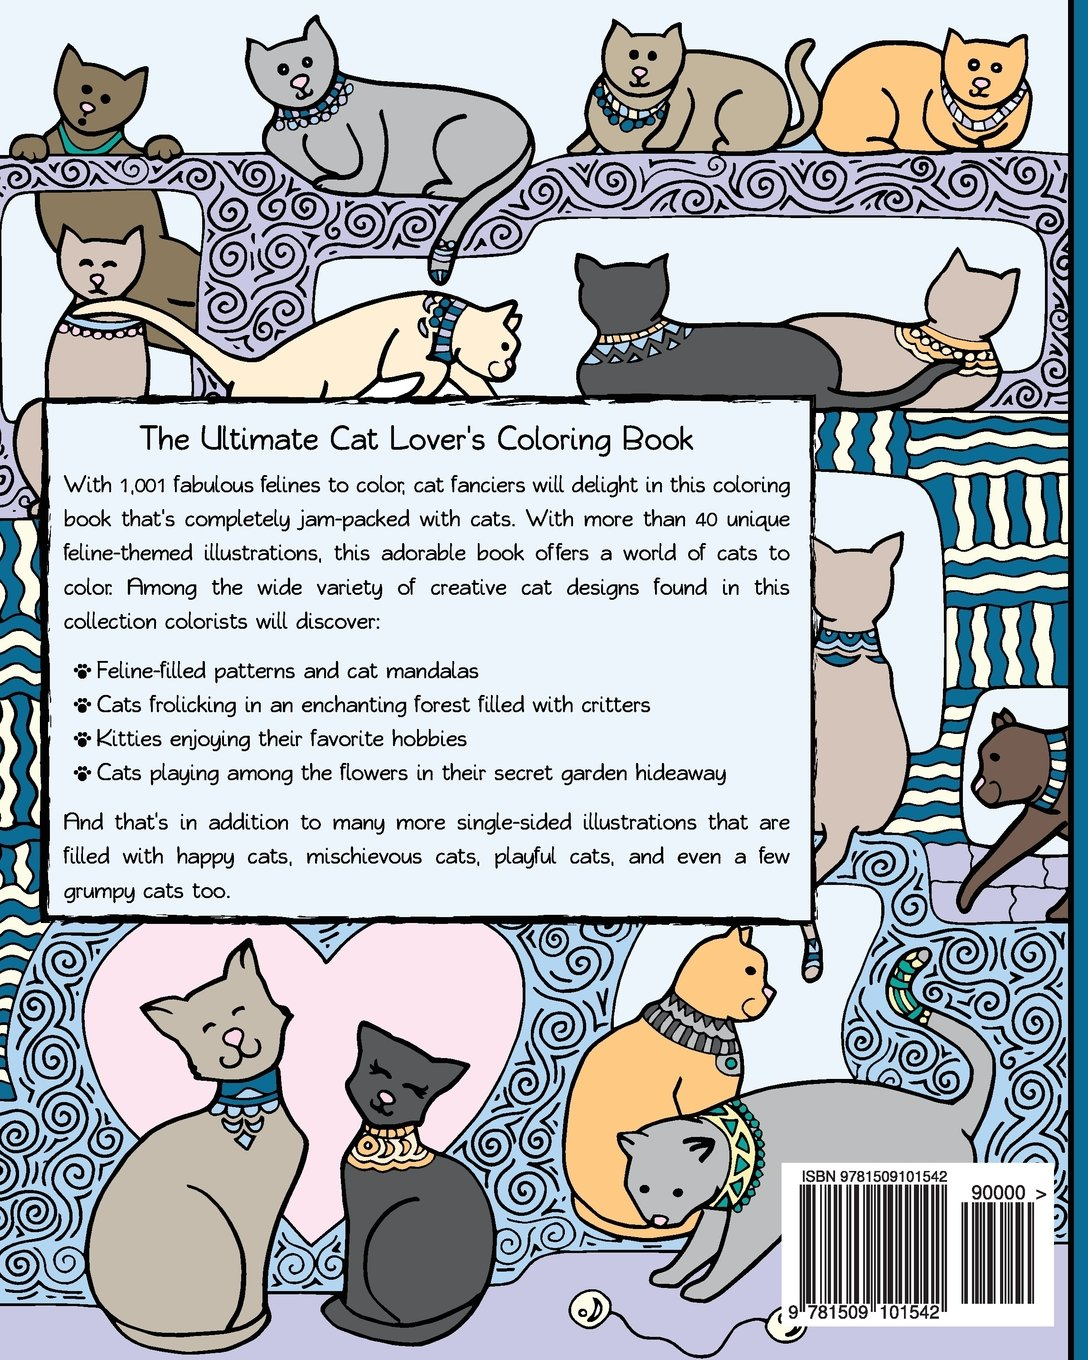 Amazon 1001 Cats A Creative Cat Coloring Book 9781509101542 HR Wallace Publishing Books